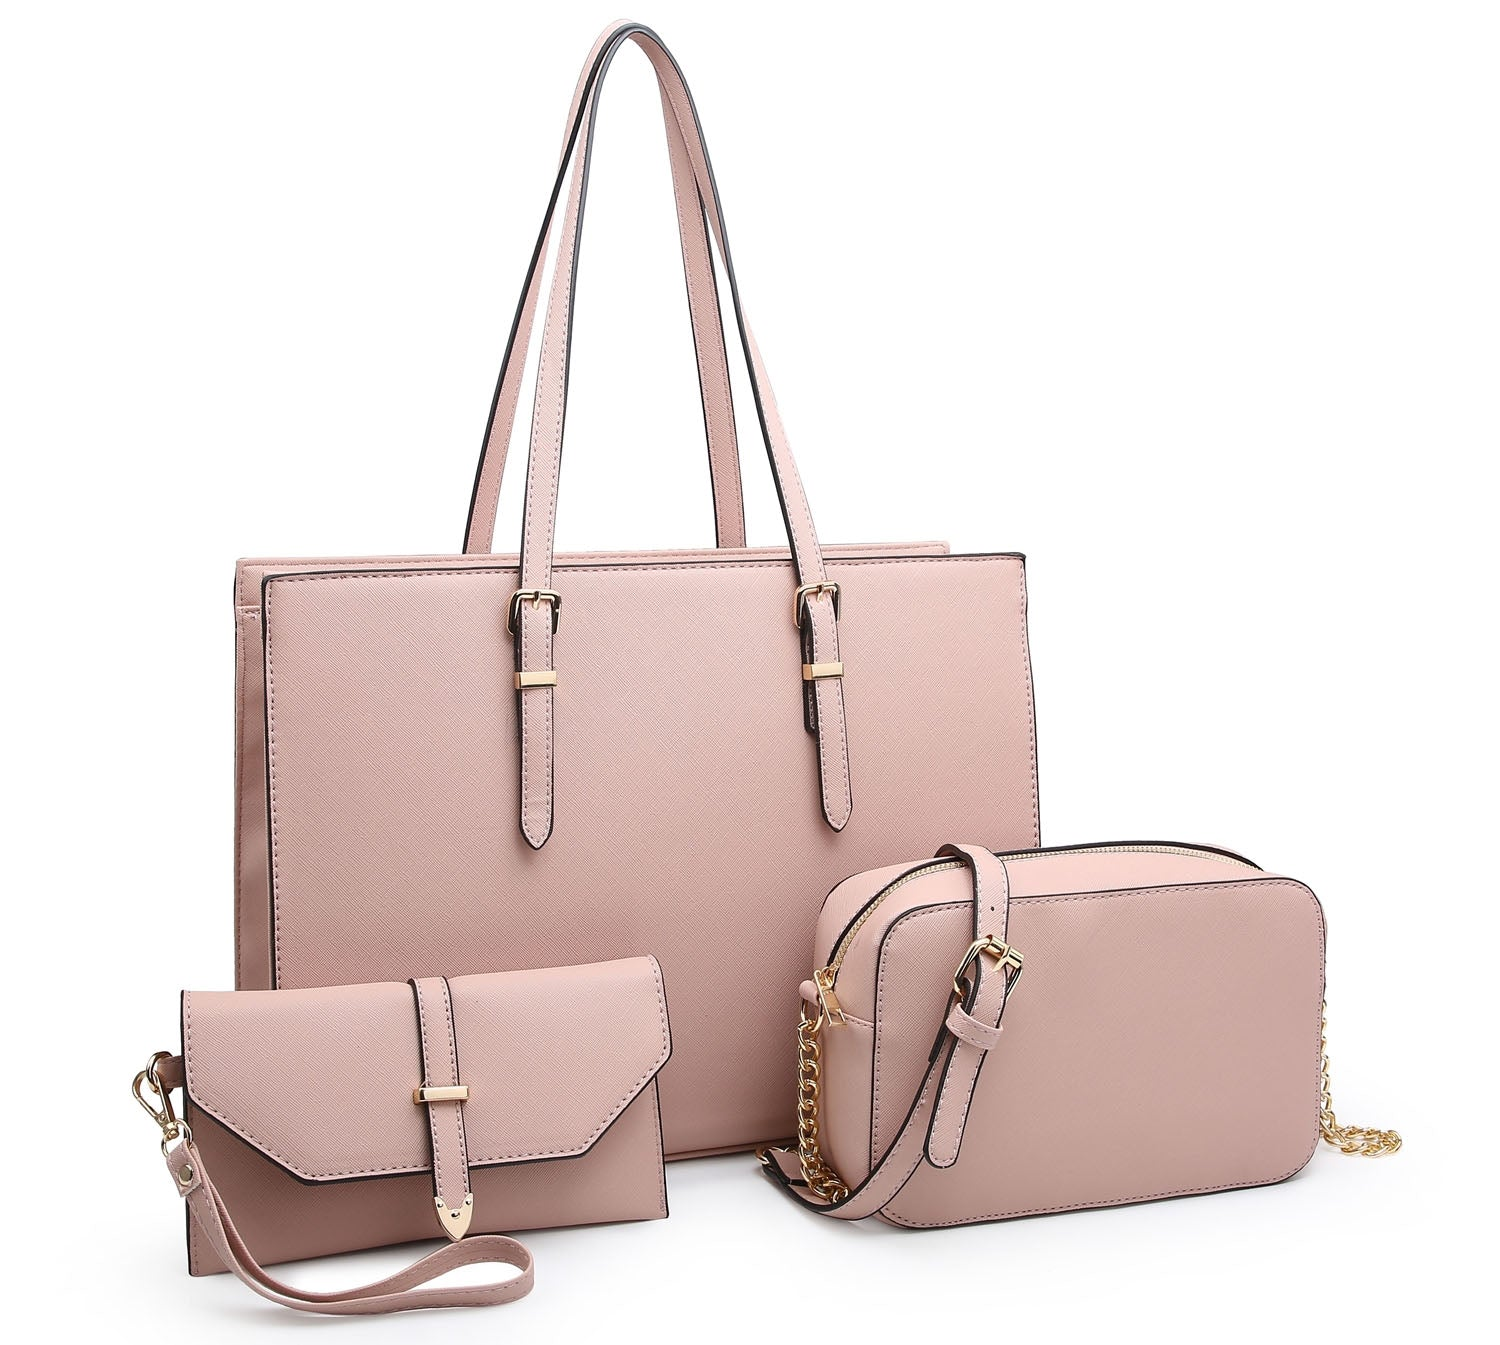 LARGE BLUSH PINK TOTE HANDBAG SET WITH PURSE AND CHAIN CROSSBODY BAG